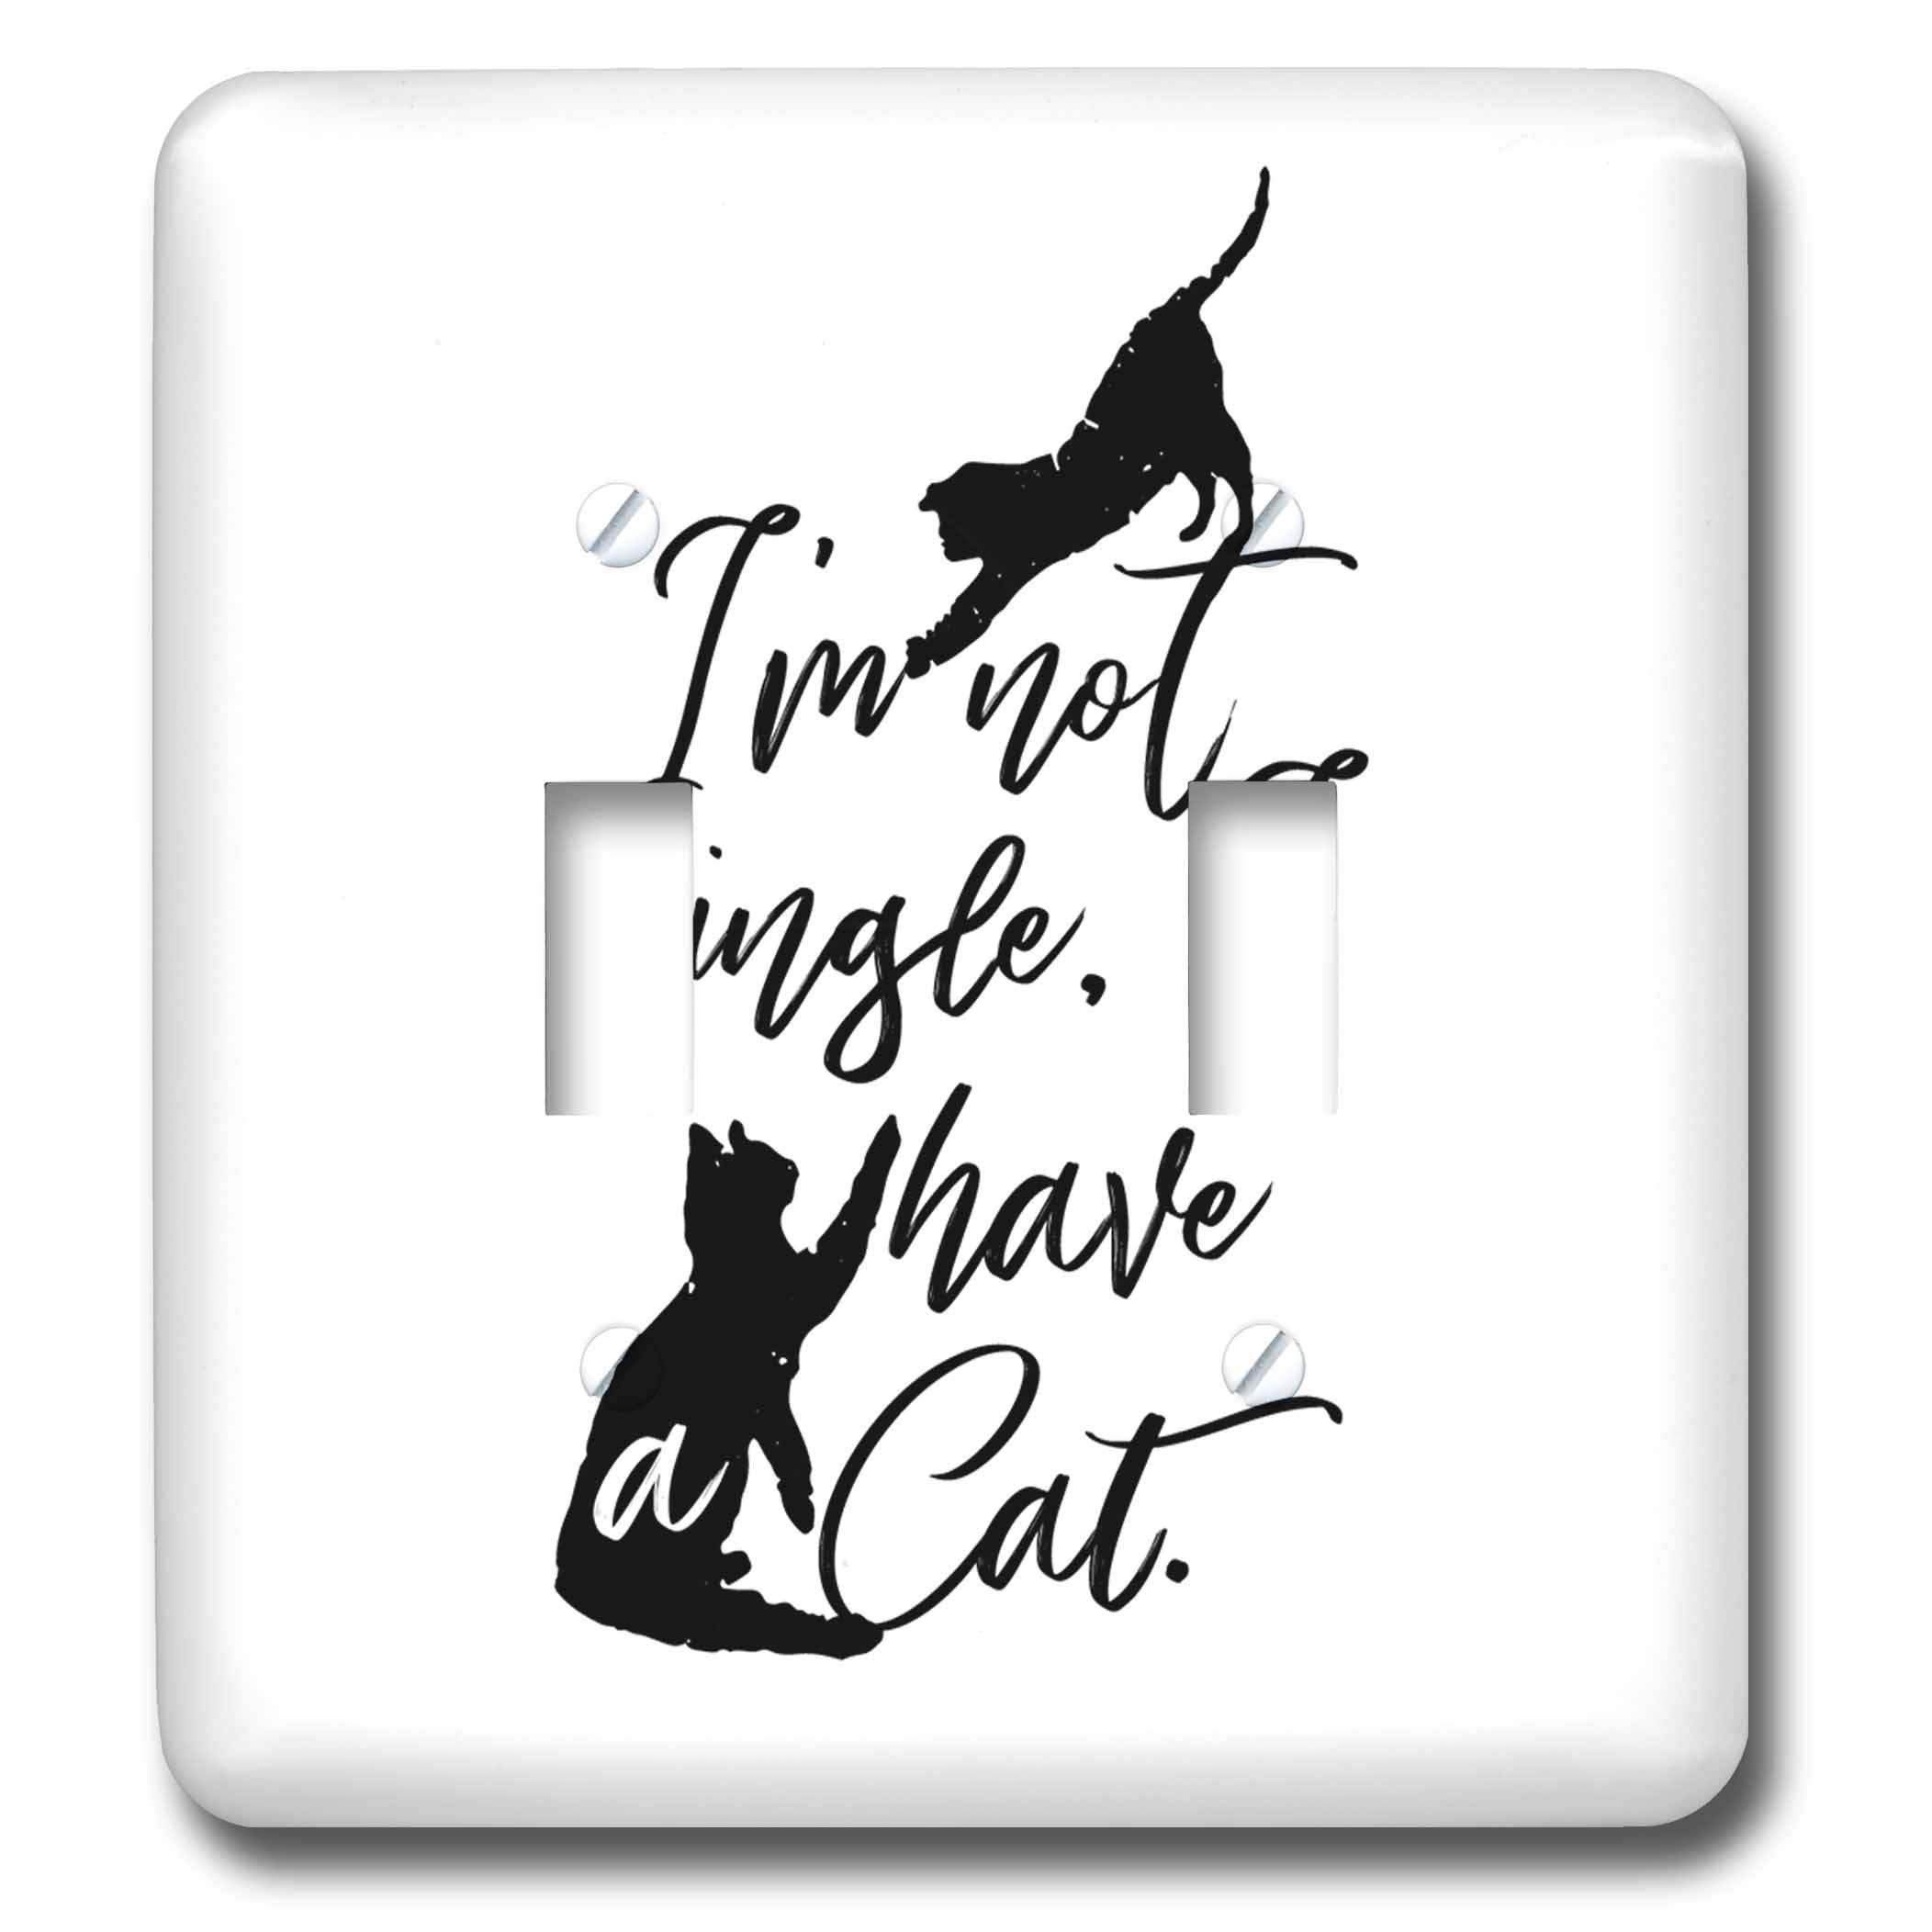 3dRose Becky Nimoy Stationery – Animals - Two cats playing hand-lettered style words, Im not single, I have cats - Light Switch Covers - double toggle switch (lsp_289193_2)